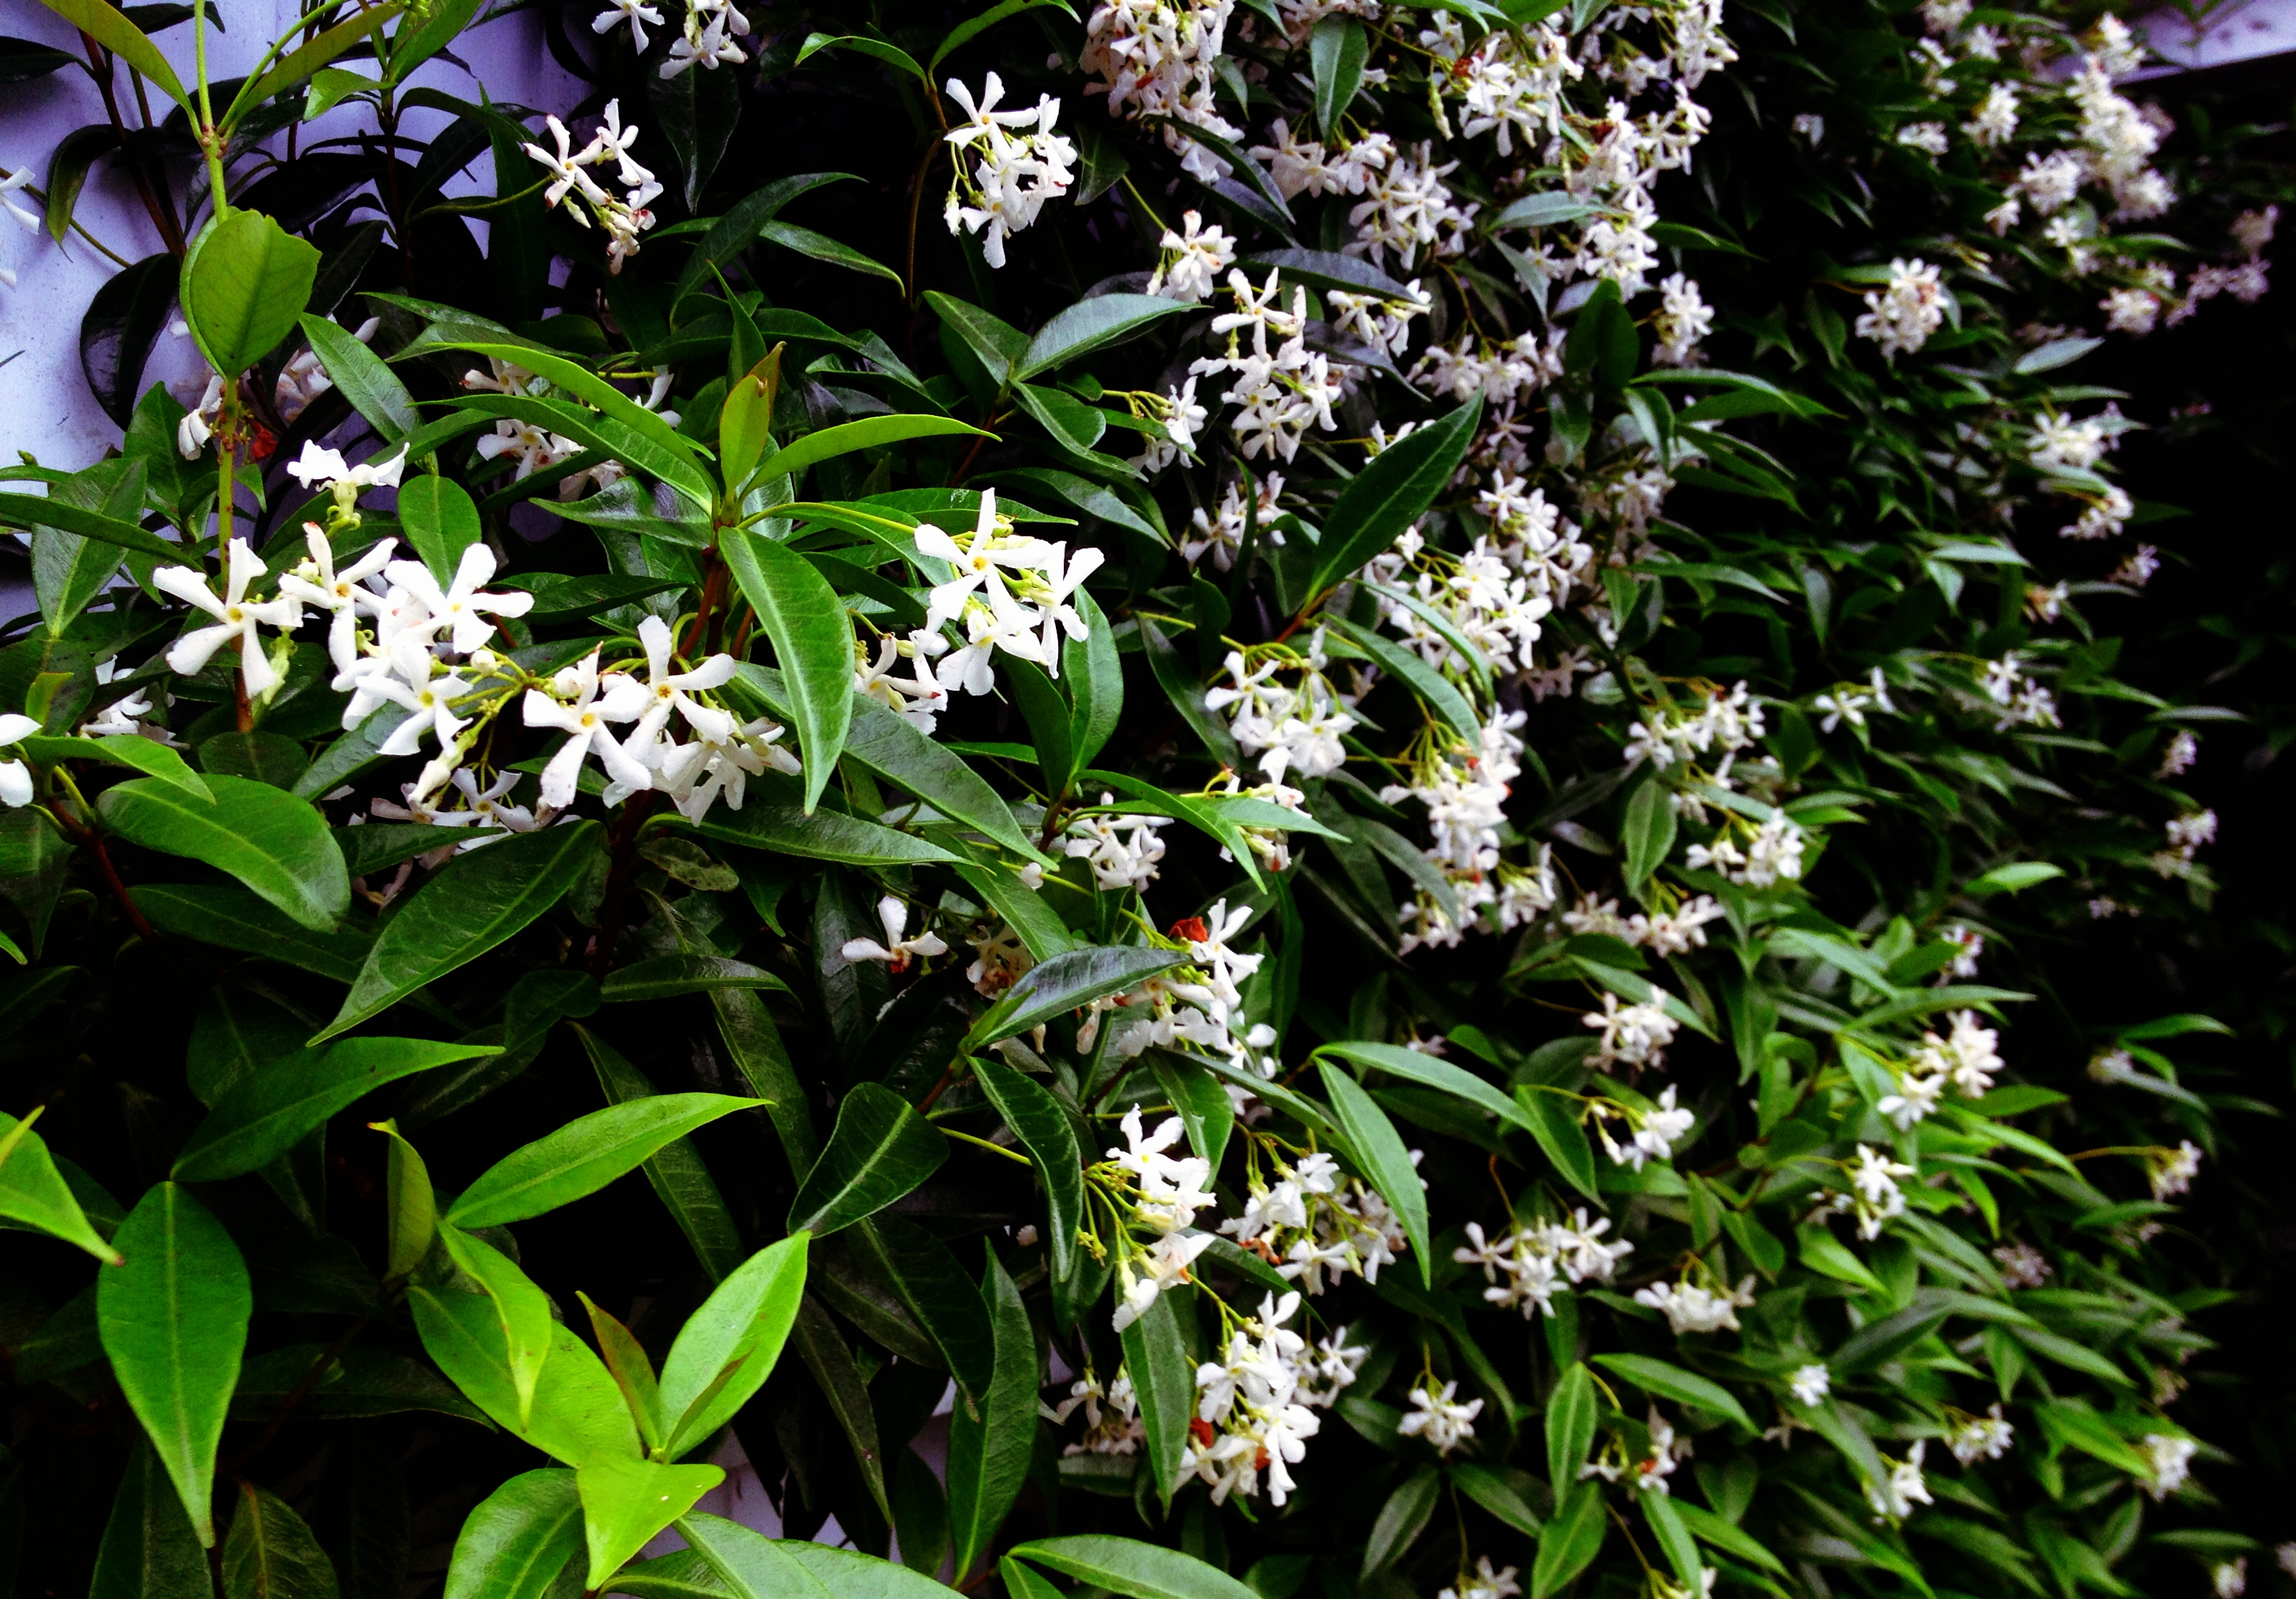 Wall of Chinese Star Jasmine